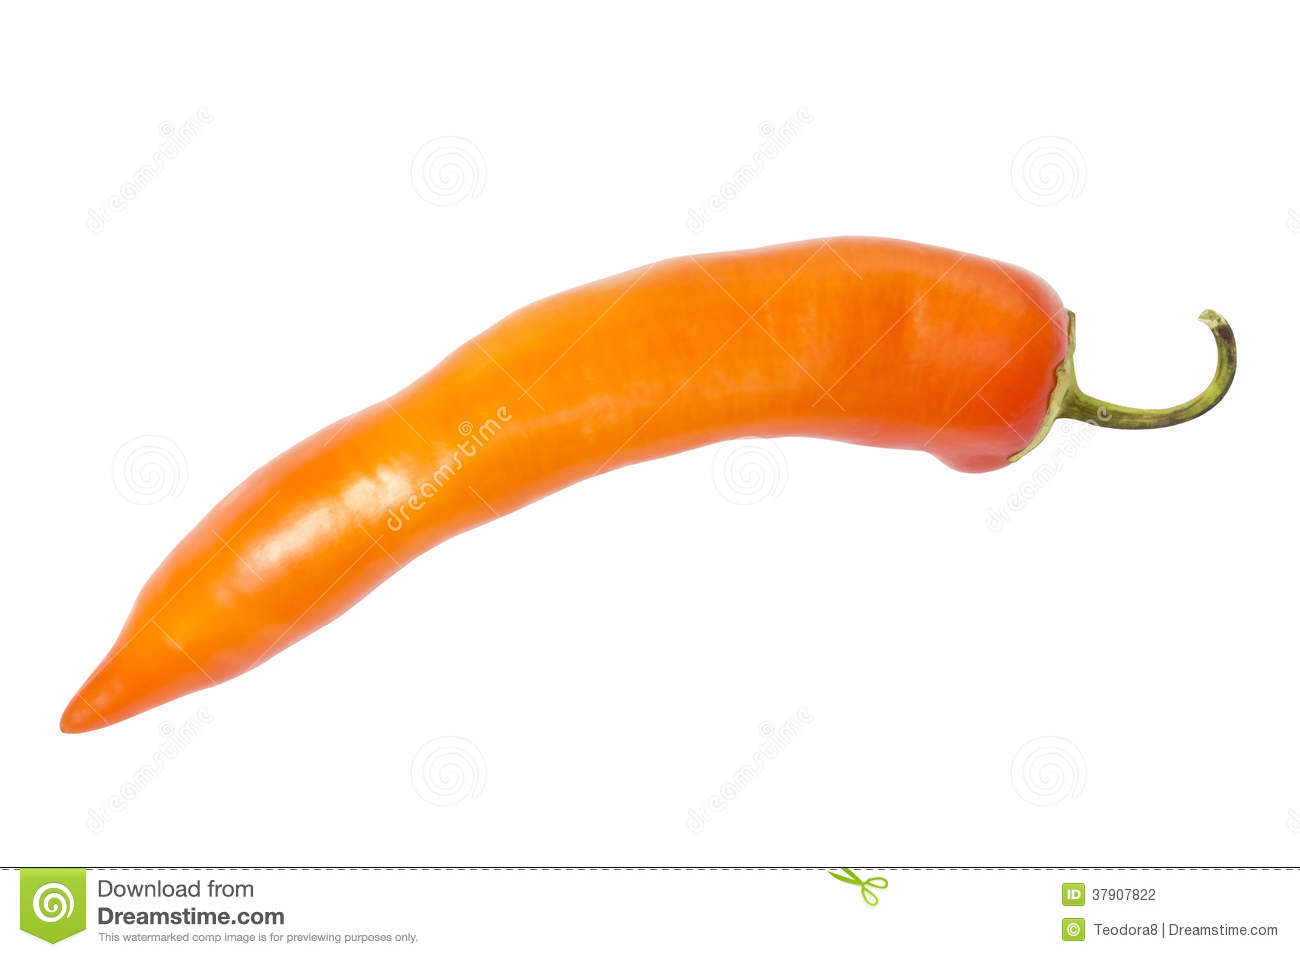 Stock Photography: Orange chili pepper. Image: 37907822